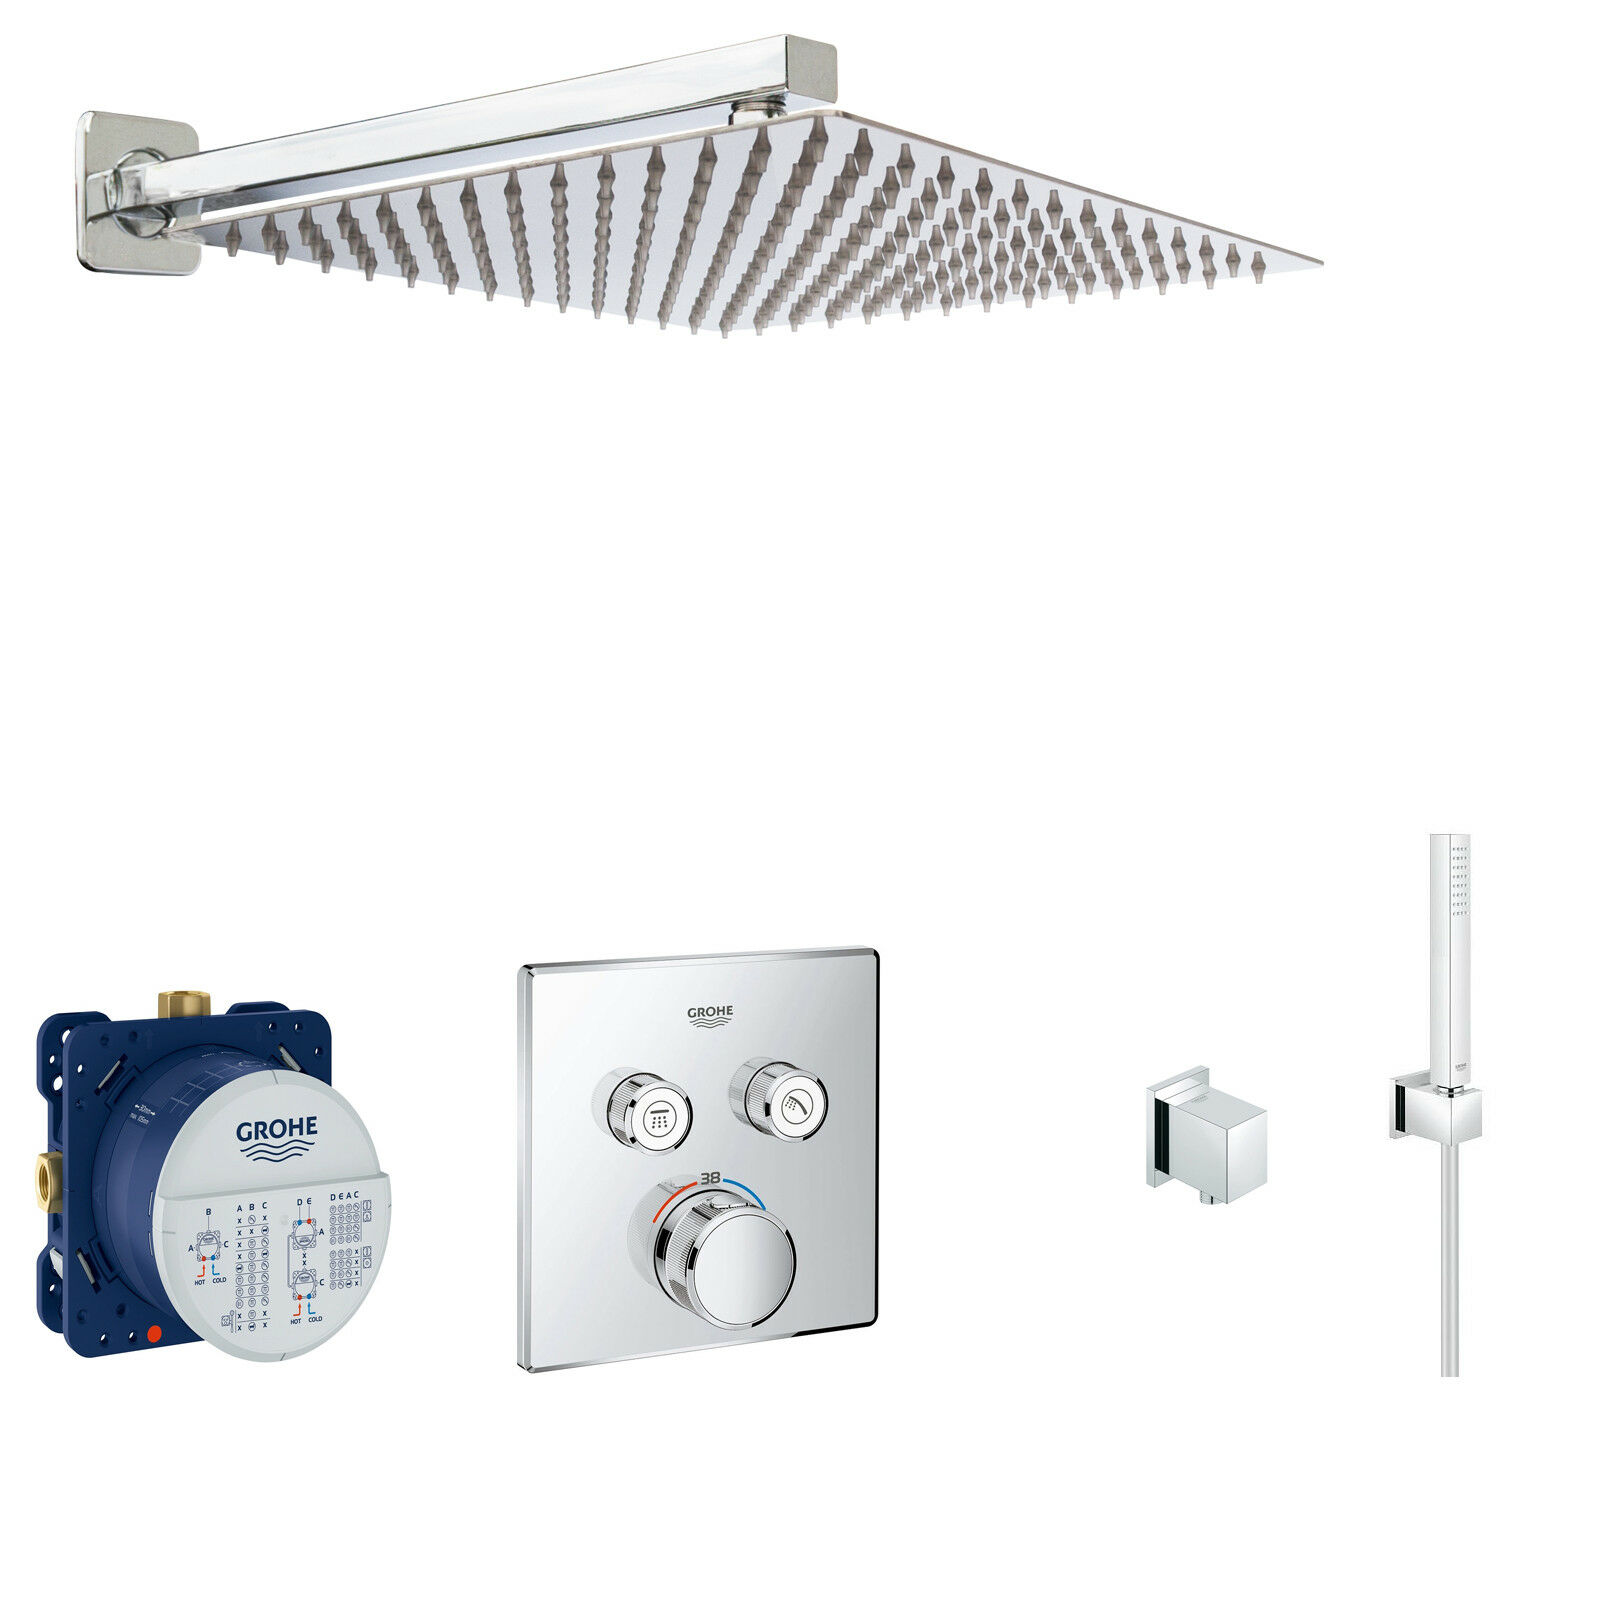 GROHE SmartControl Unterputz Duschsystem Grohtherm Thermostat Kopfbrause A36